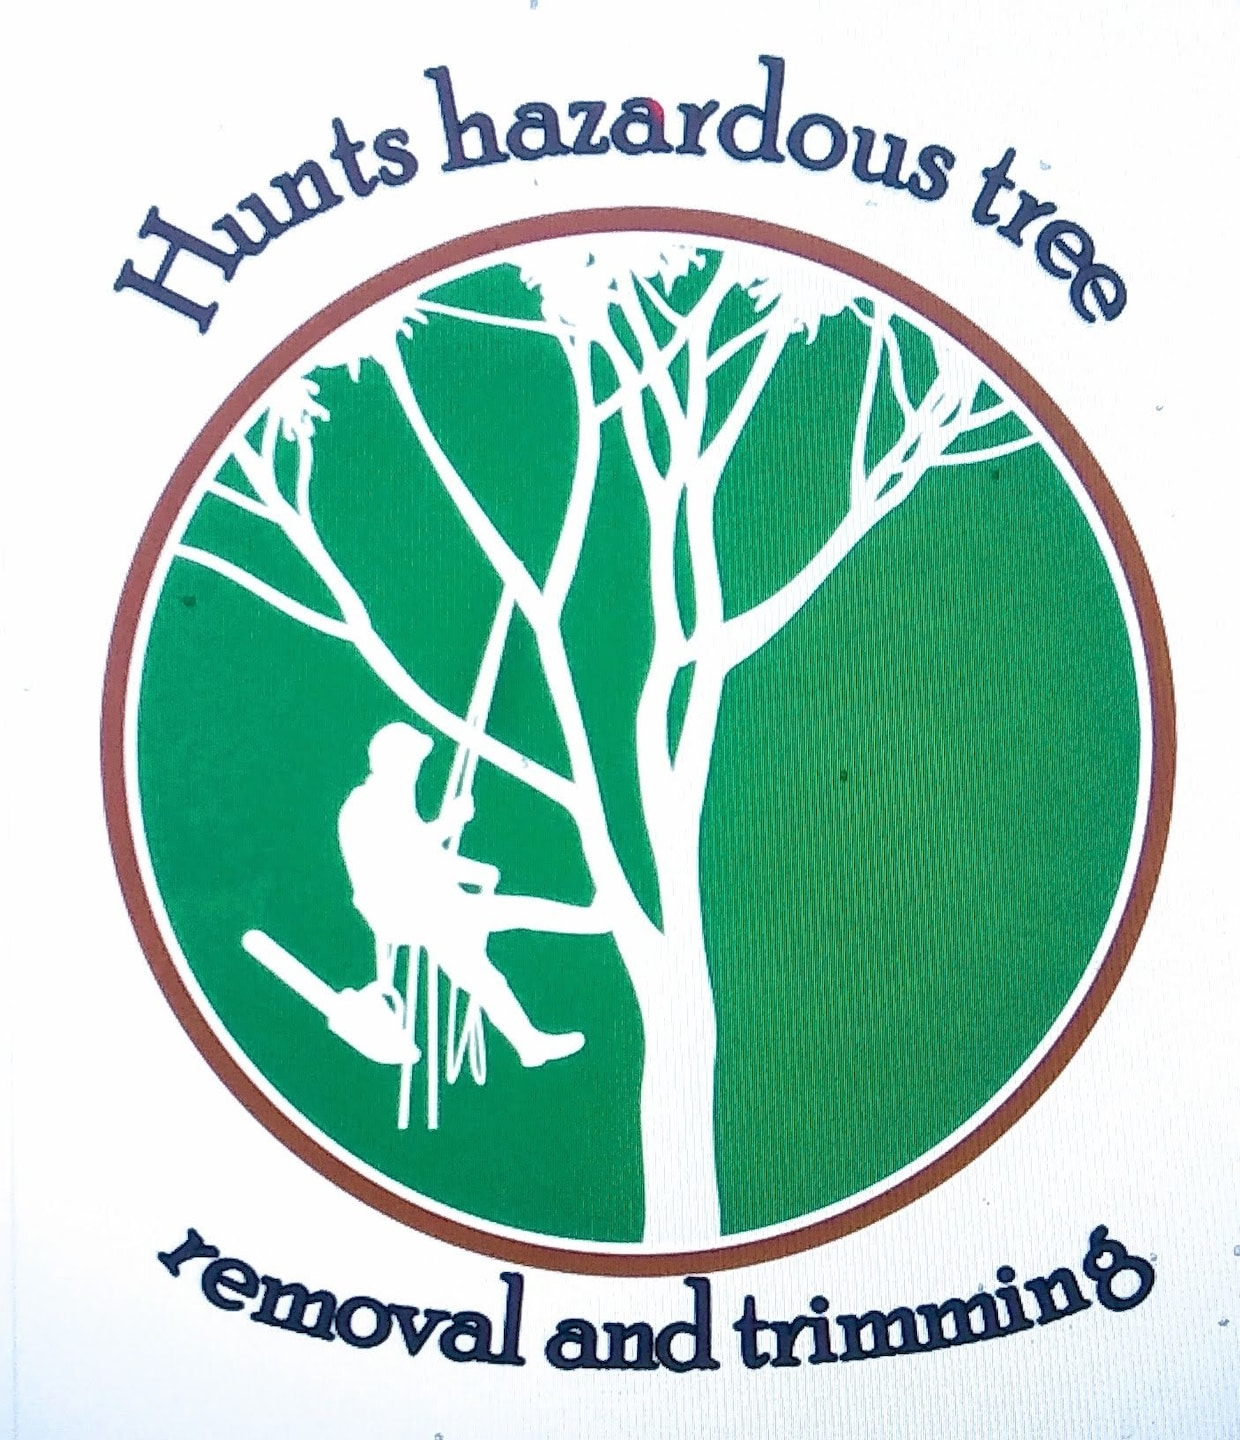 Hunts hazardous tree removal and trimming